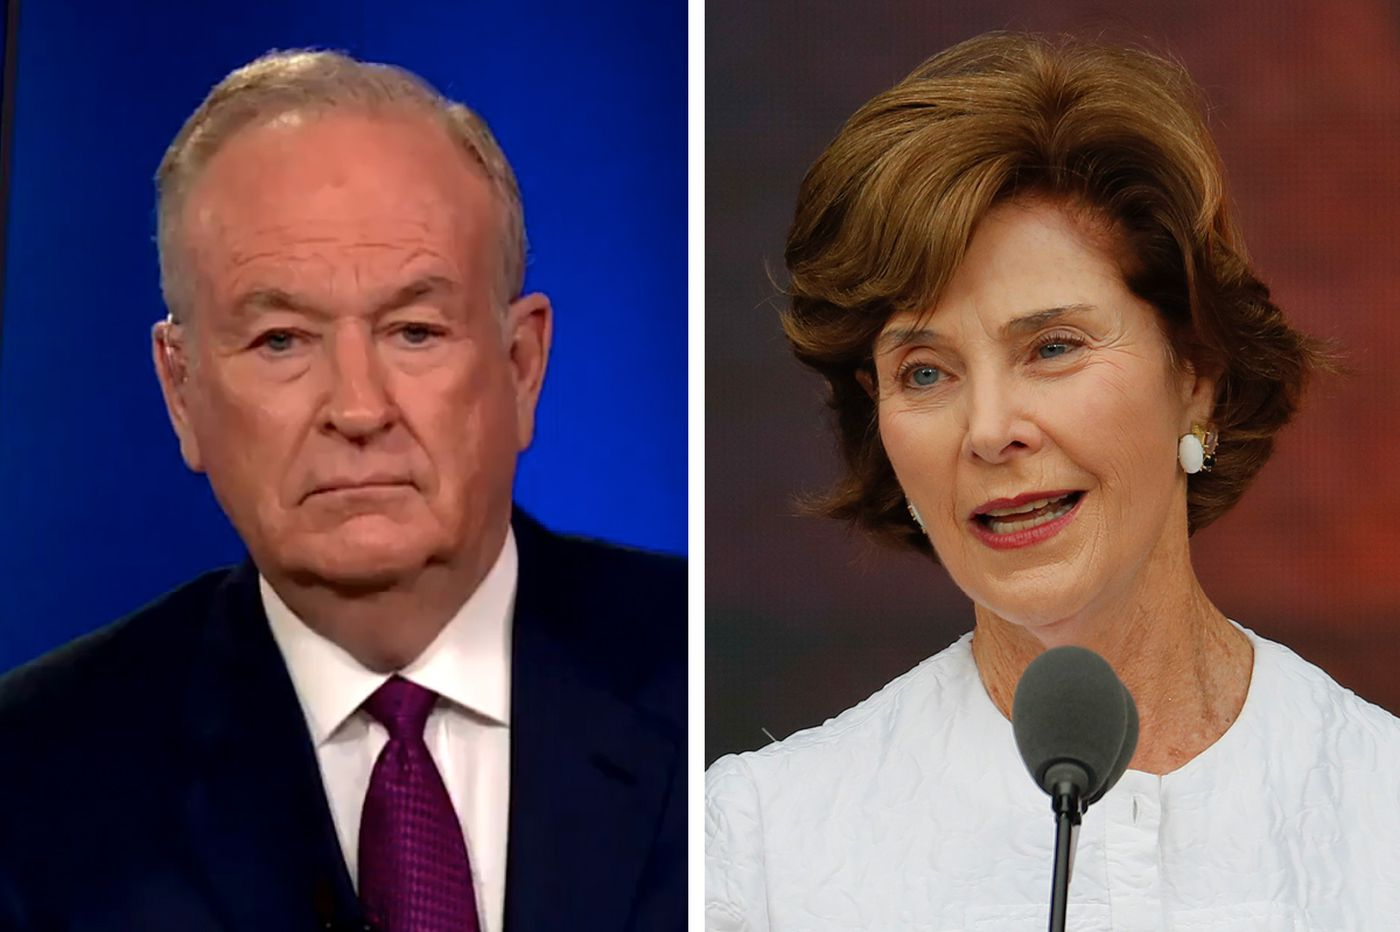 Bill O'Reilly, Laura Bush and other conservatives bash Trump admin's 'zero-tolerance' border policy